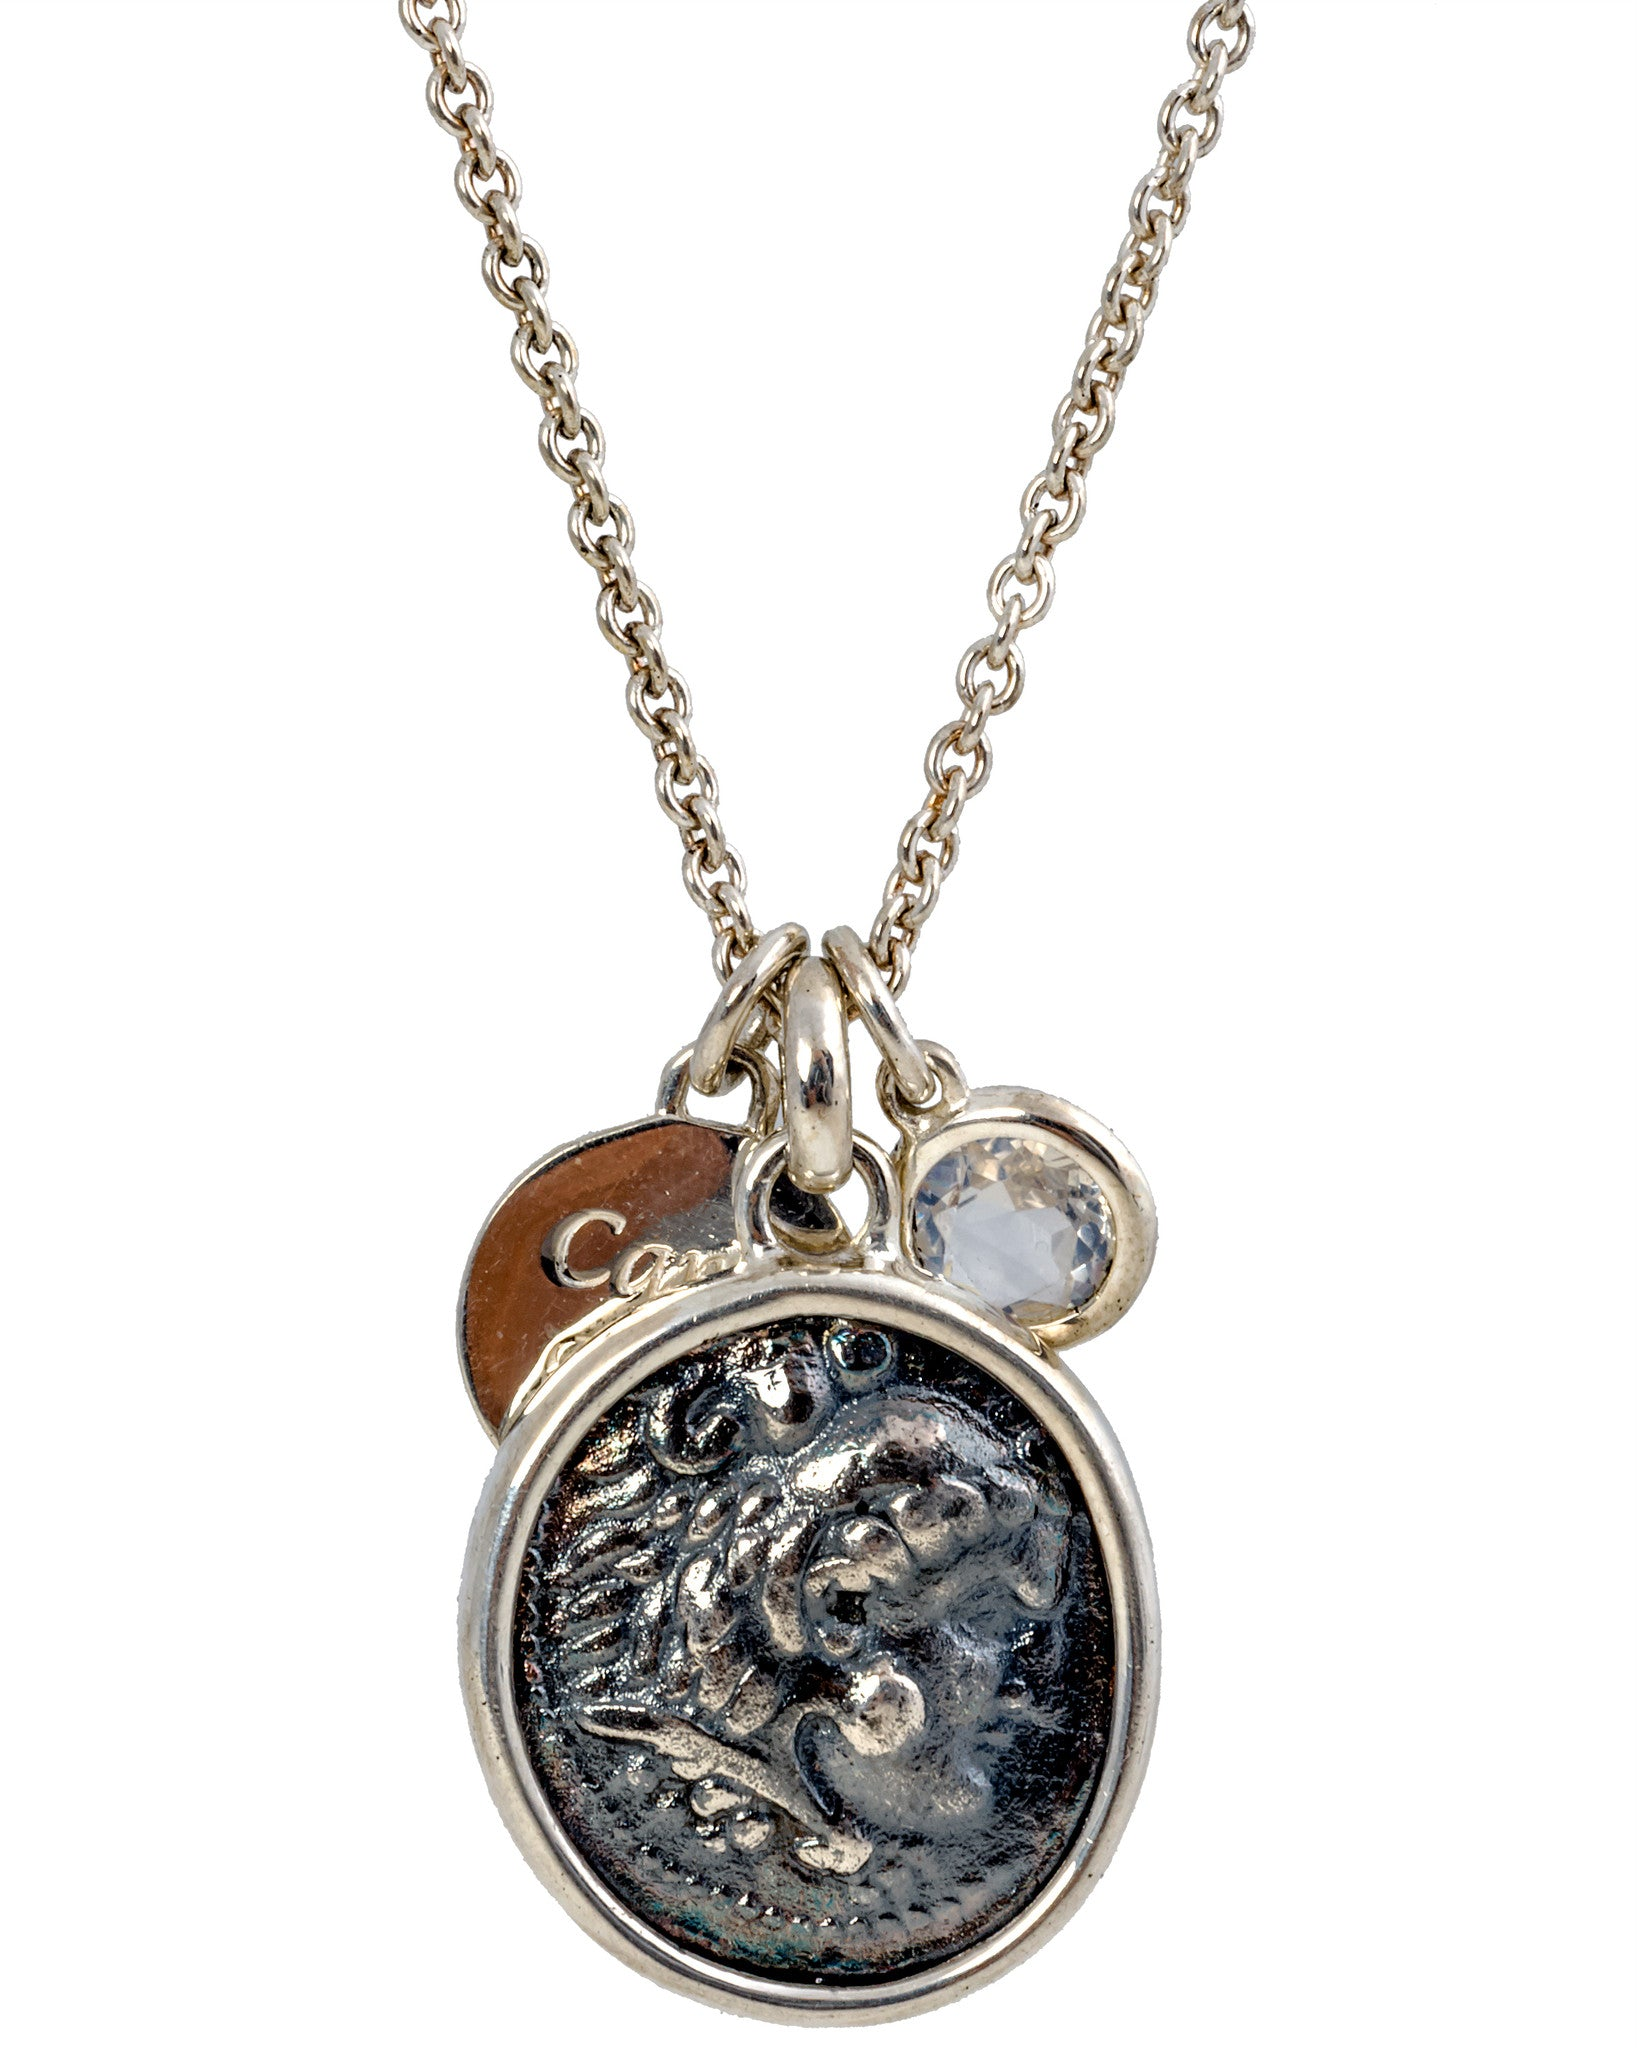 Legacy Vivace Sterling Silver Chain w/ 1 Large Antique Alexander The Great Coin, Sterling Silver Disk and Moonstone (1.50 ct.) Pendants - Chain Length: 18 in